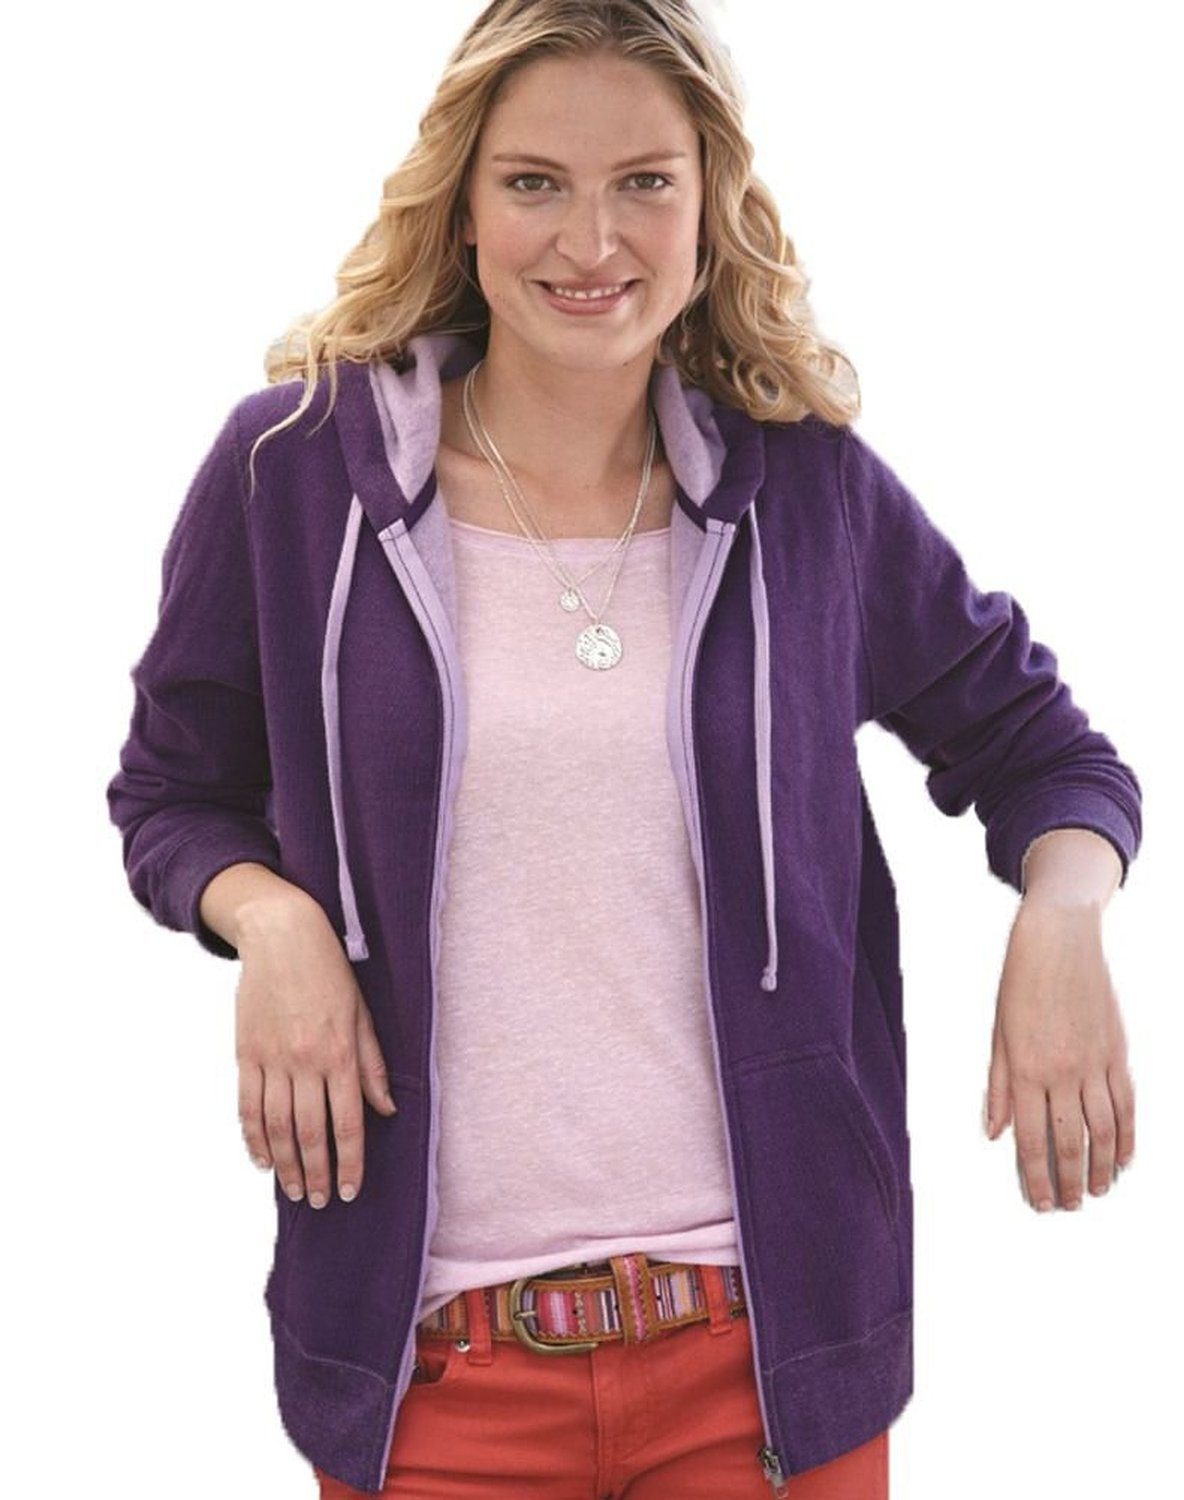 Independent Trading Co. Juniors Two-Tone Deluxe Fleece, Large Grape/orchid